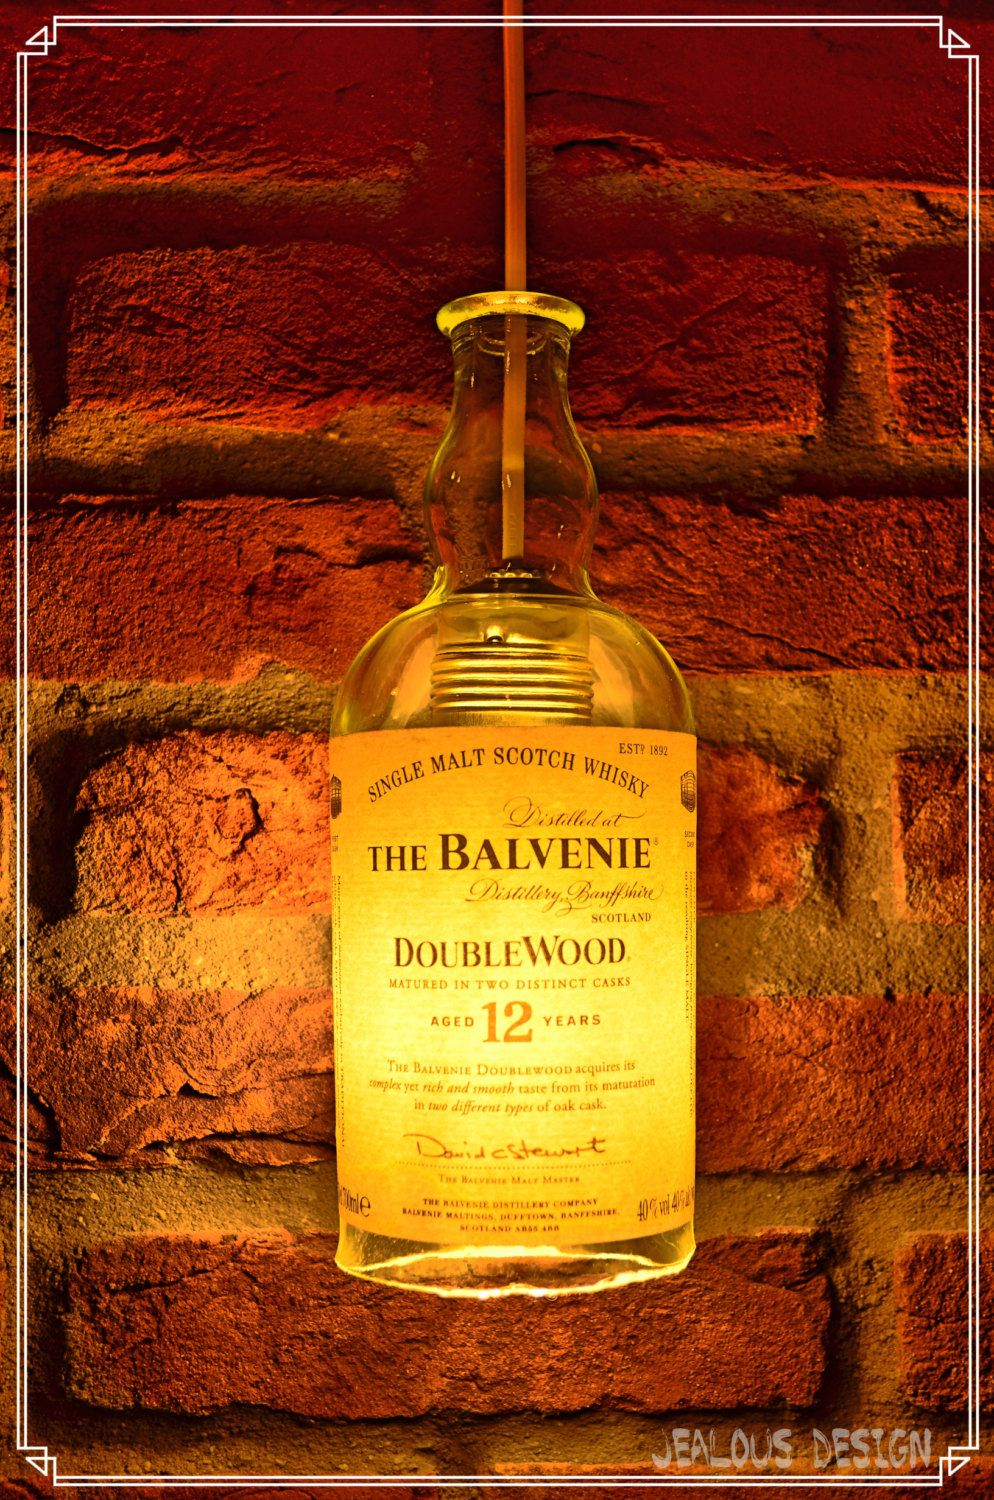 Balvenie Whisky Bottle Light Hängelampe Pendellampe von JealousDesign auf Etsy